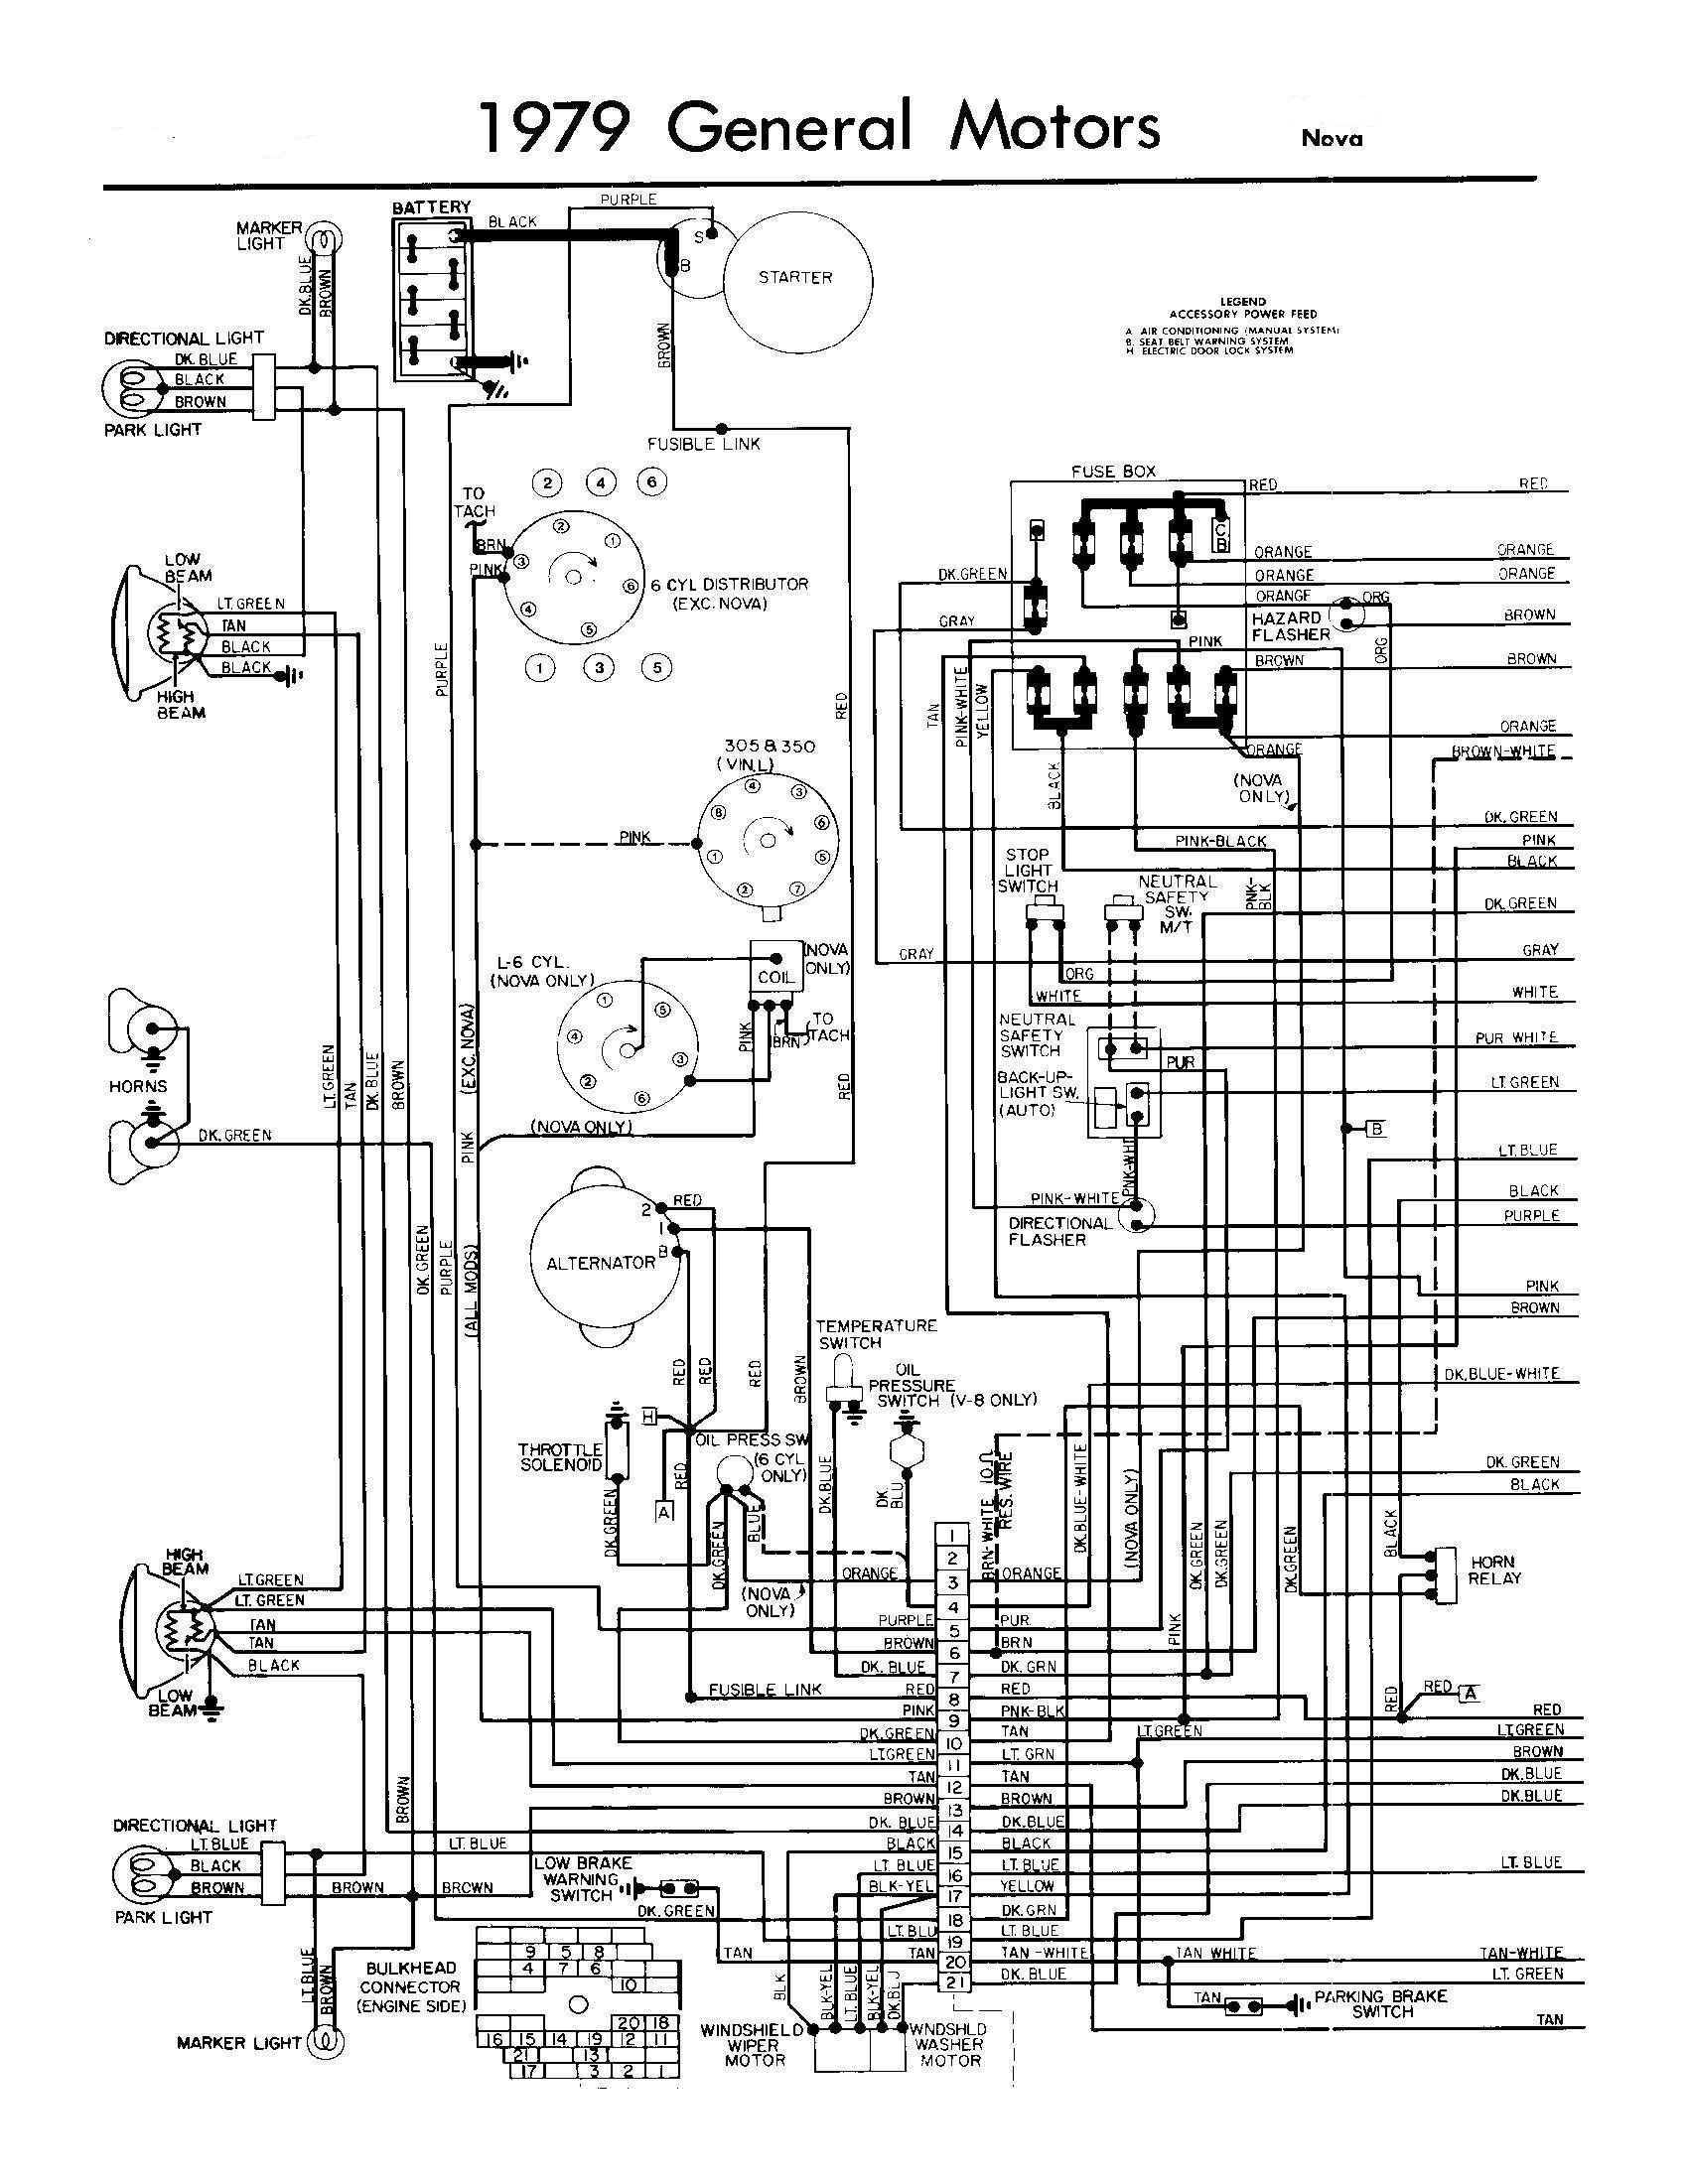 Farmall Cub Wiring Diagram 12v | Wiring Library